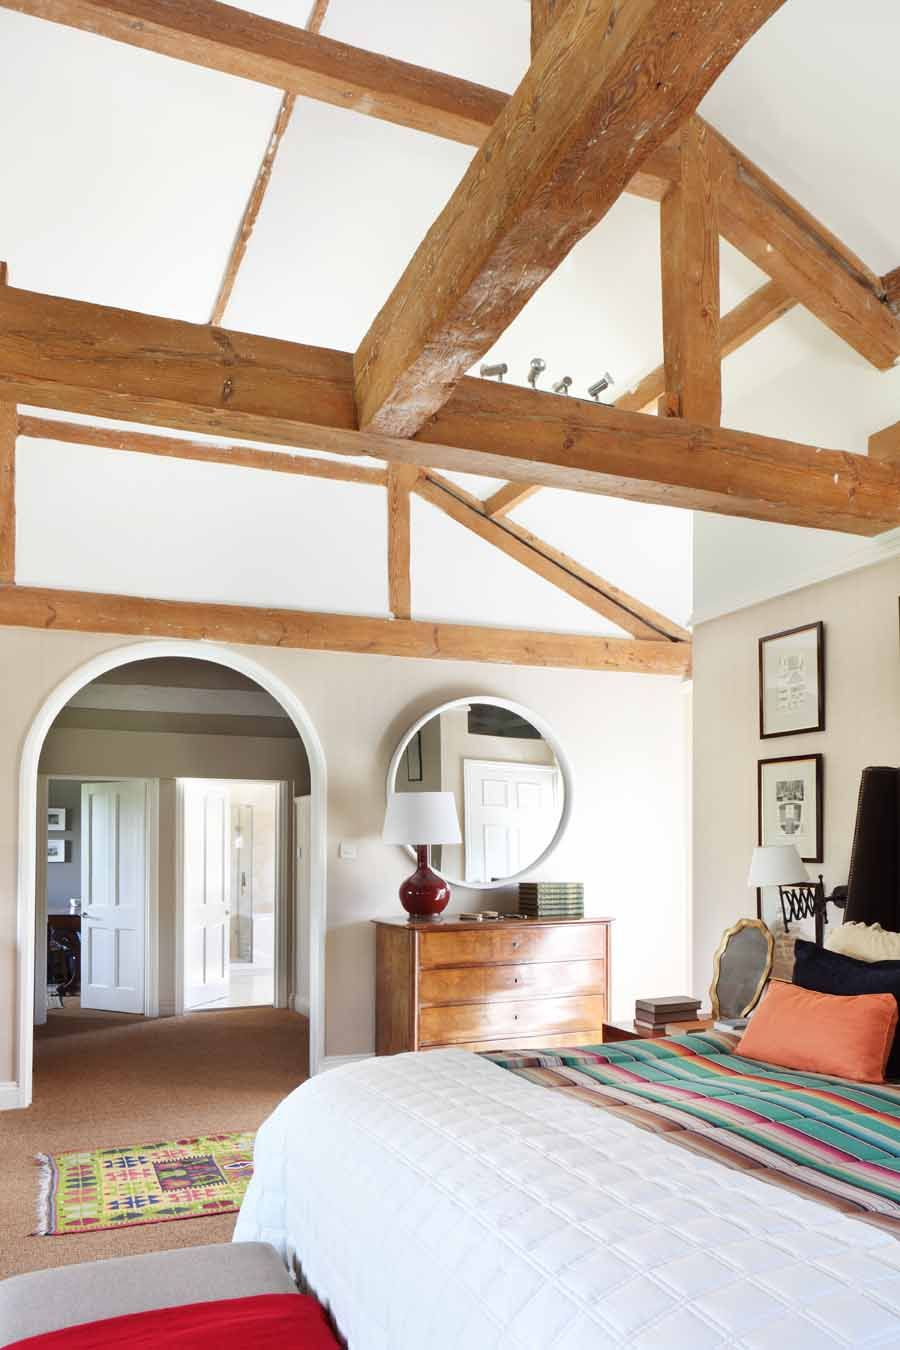 HOUSE TOUR: A Former Horse Stable Becomes A Stunning English Estate